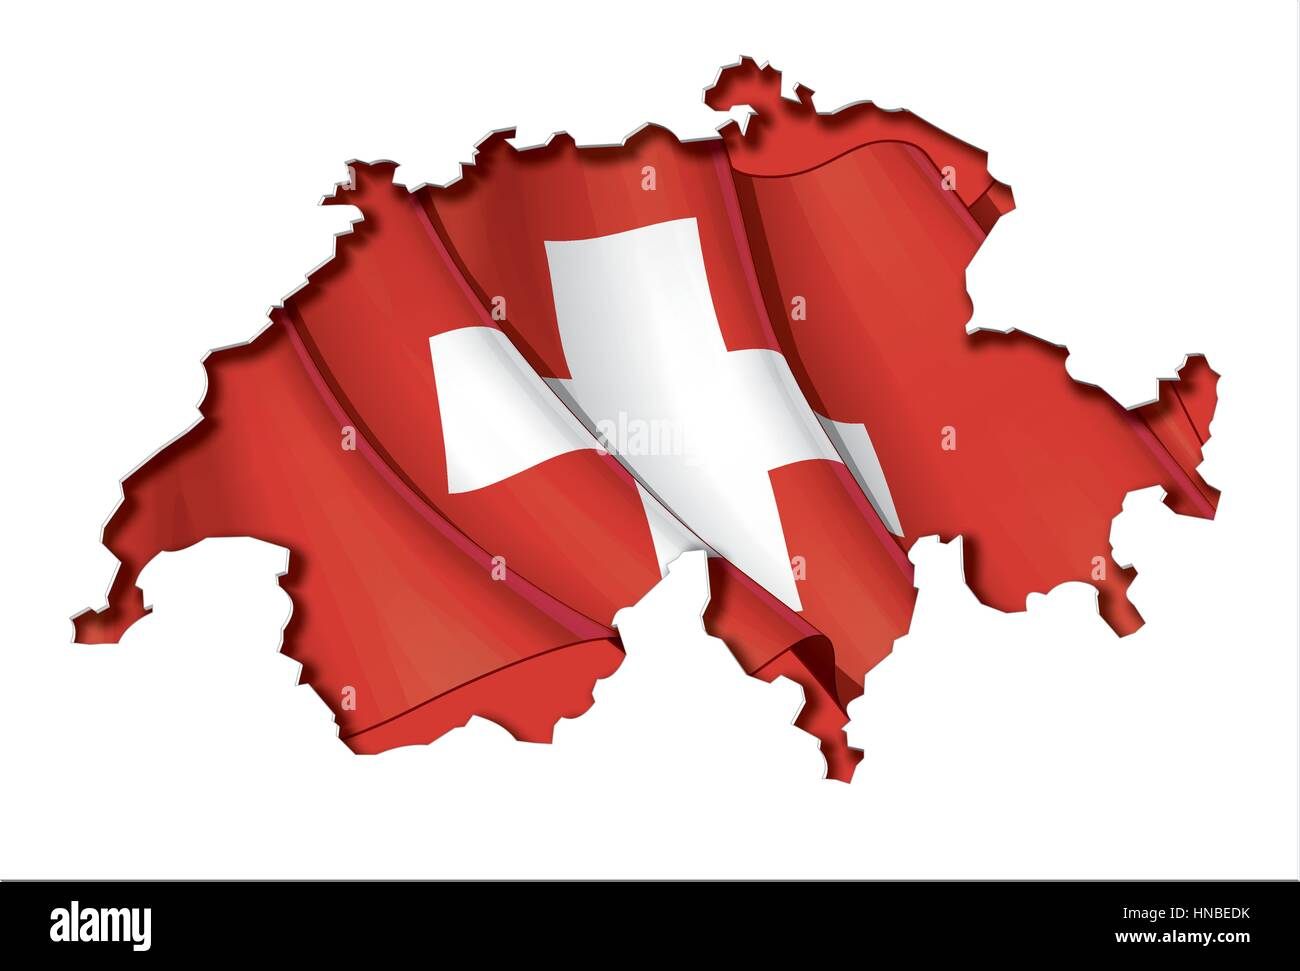 Swiss map cut-out, highly detailed on the edge's shading, with a waving flags underneath. The Settle thickness - Stock Vector